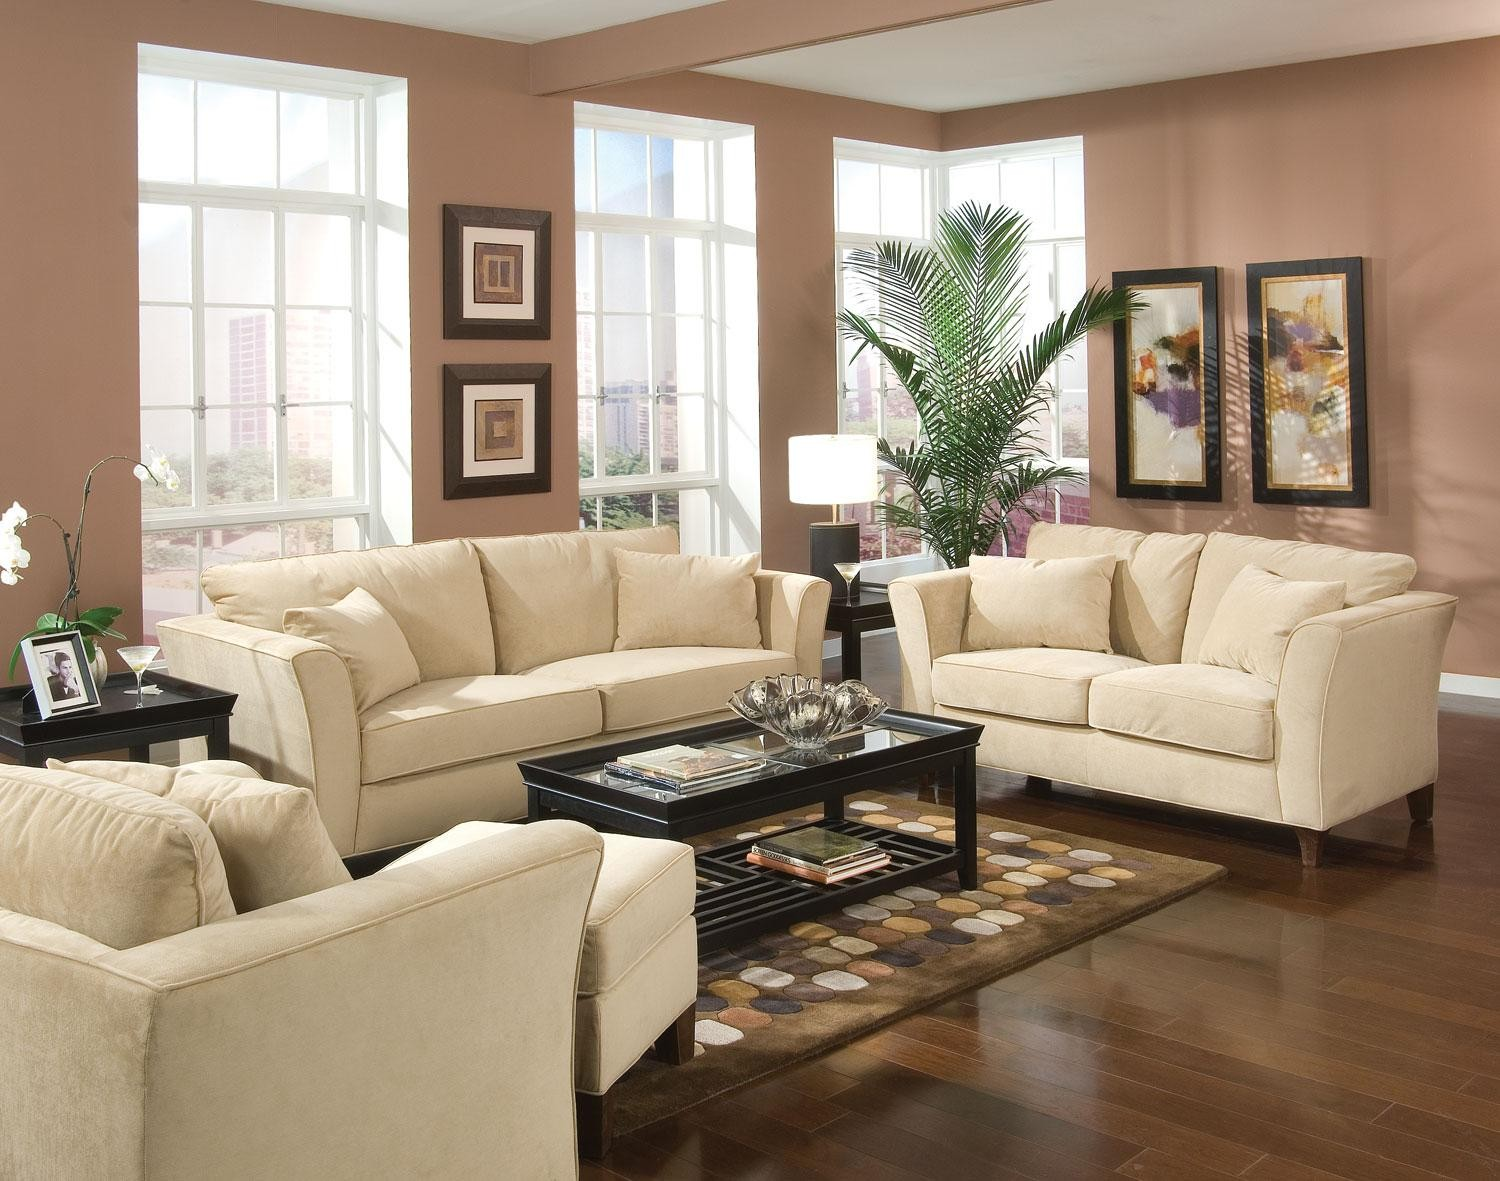 cream living room set. Park Place Cream Living Room Collection From Coaster Furniture  419272 Set 500231 from